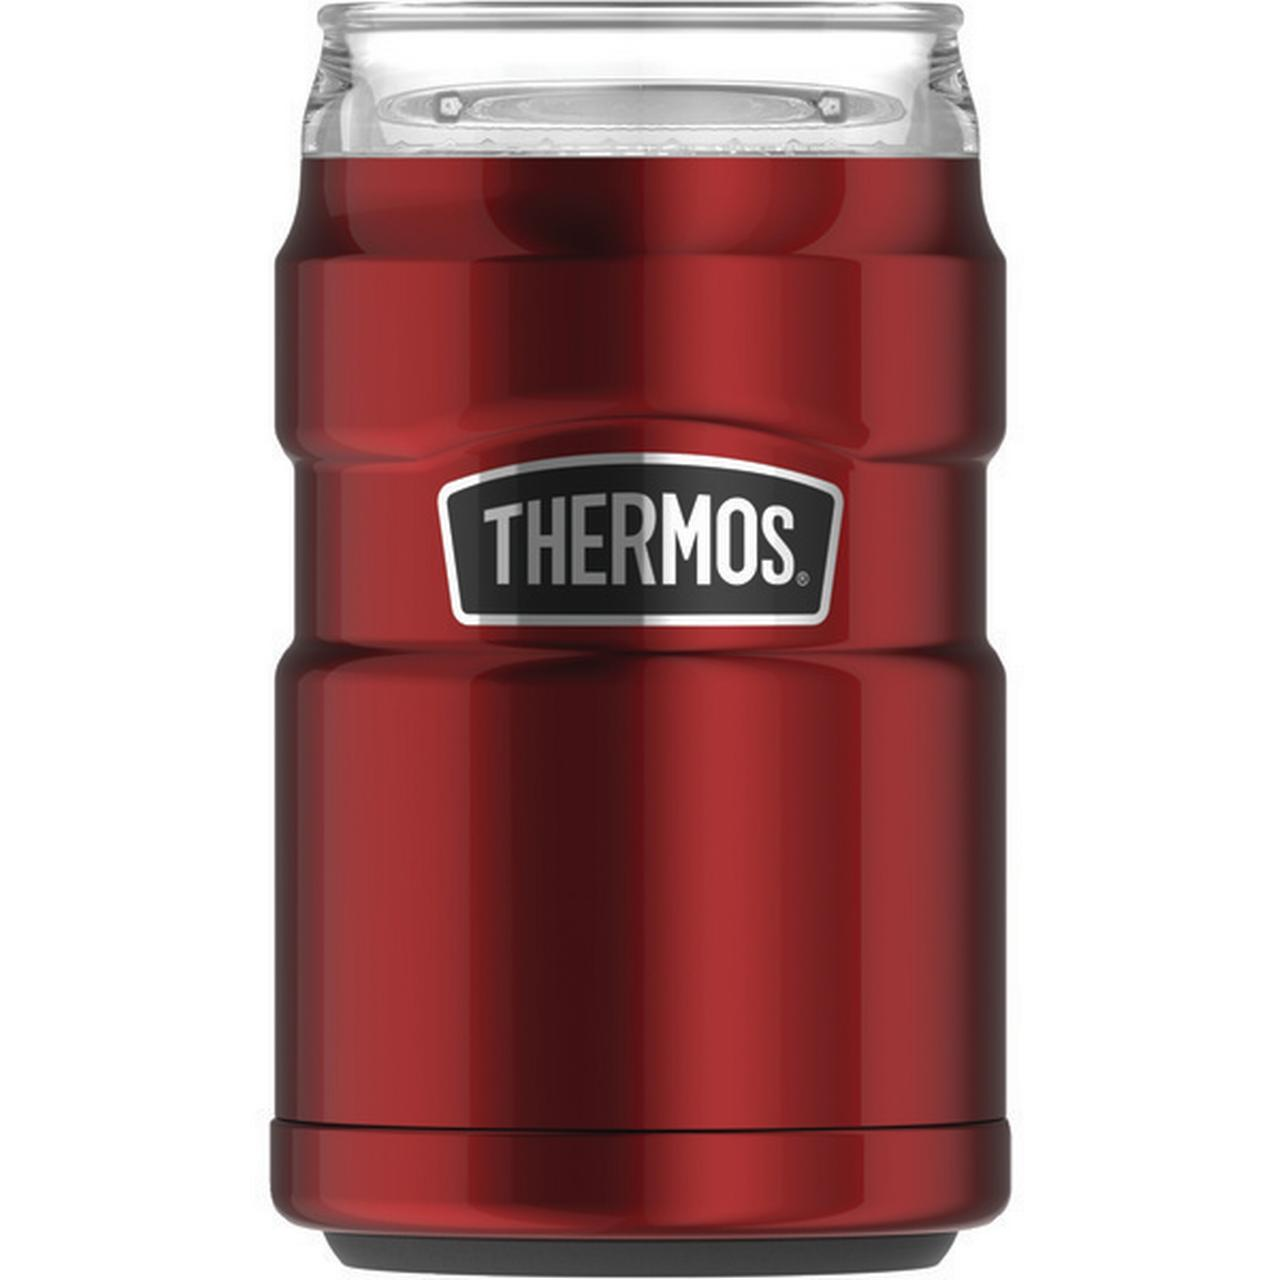 Thermos Sk1500cr4 10 ounce Stainless Steel Tumbler With 360deg Drink Lid  cranberry